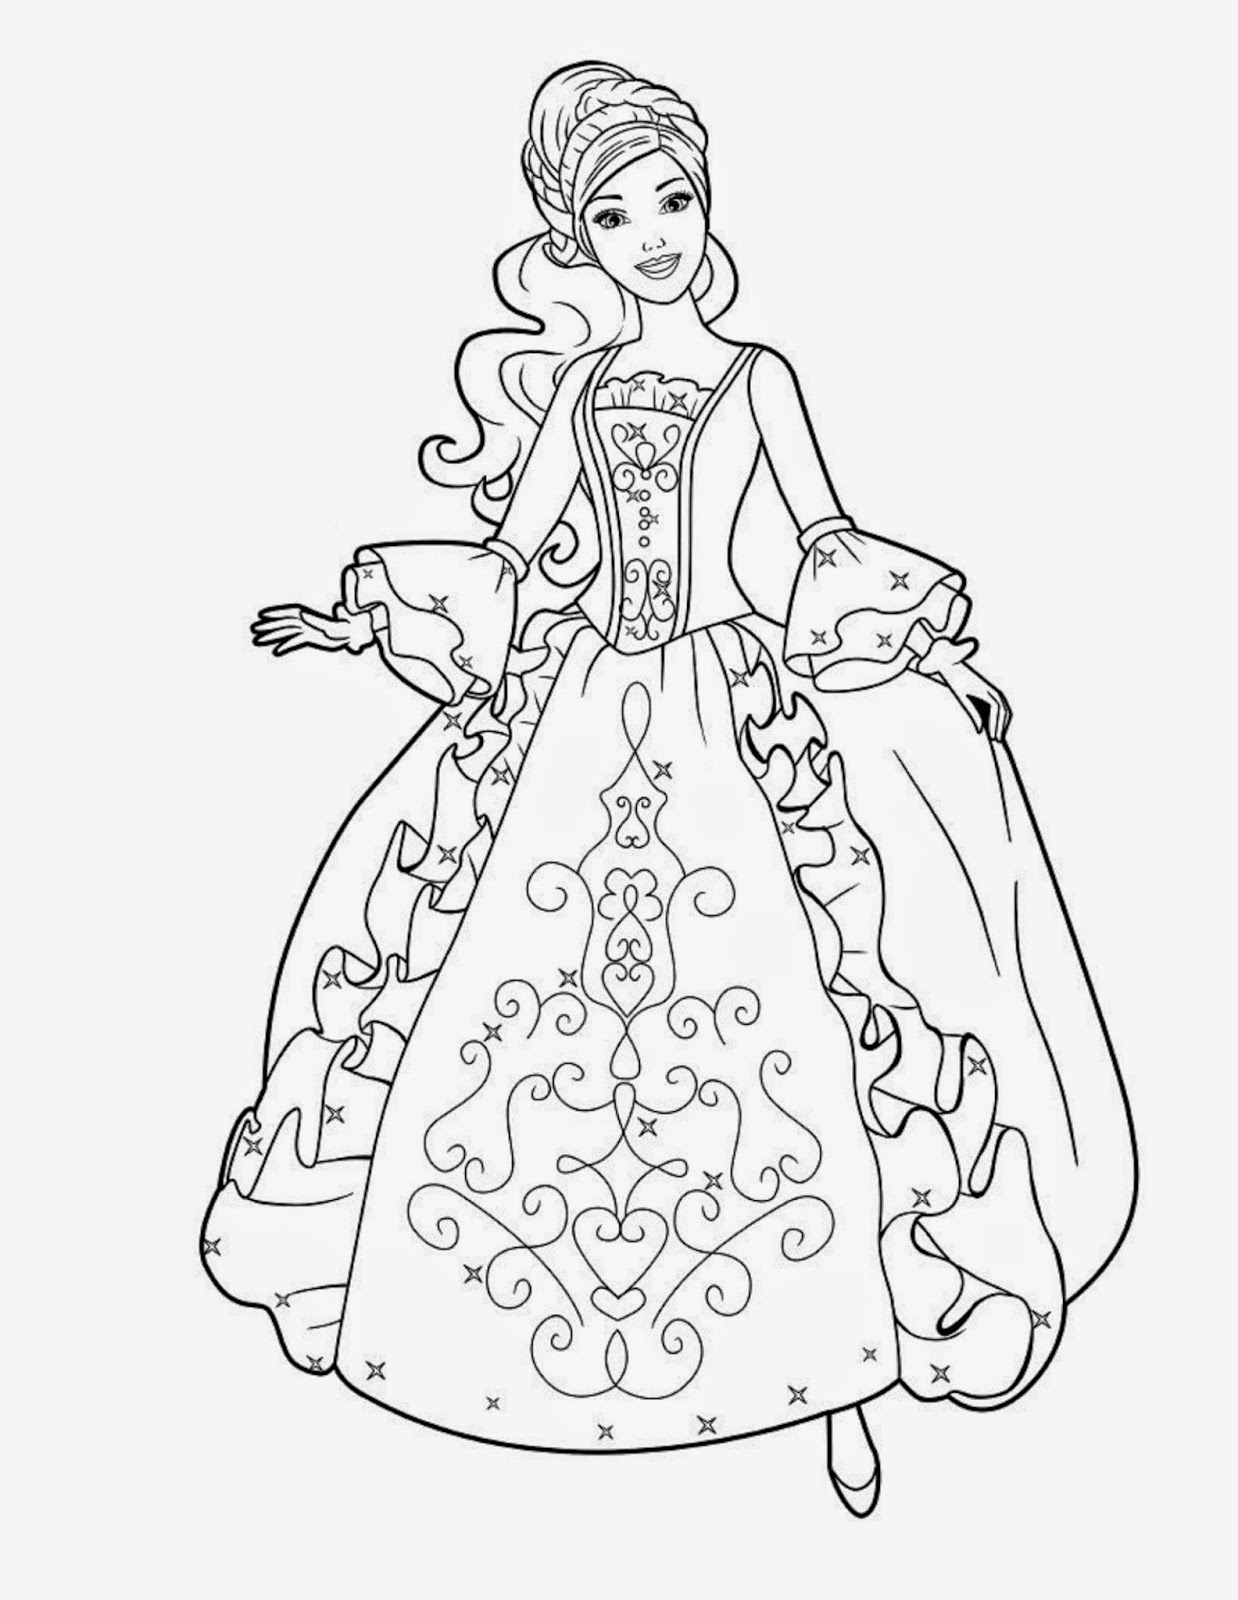 Barbie Rapunzel Ausmalbilder : Barbie Line Drawing At Getdrawings Com Free For Personal Use